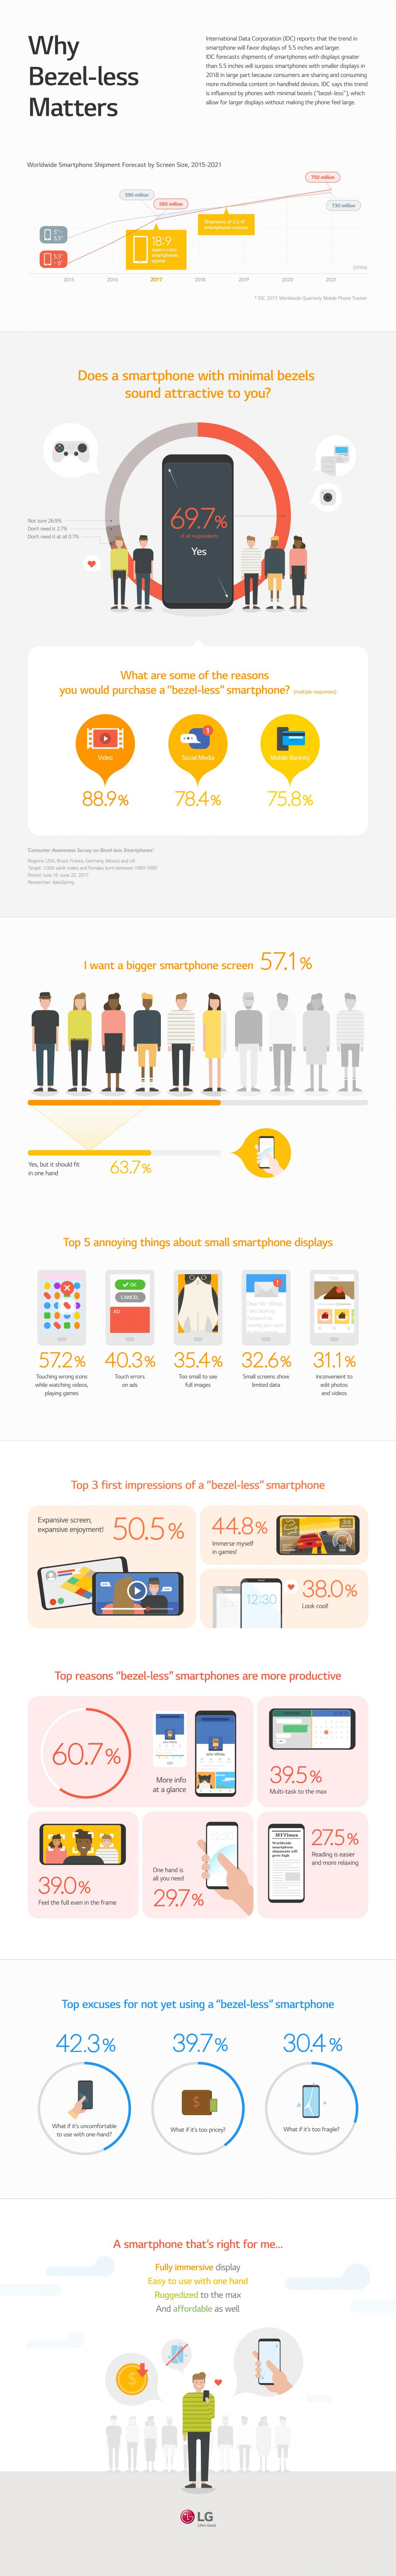 """This infographic titled, """"Why Bezel-less Matters,"""" shows consumer survey results on people's perceptions and preferences for smaller bezels and bigger screens, and the reasons why they haven't bought such a smartphone yet."""